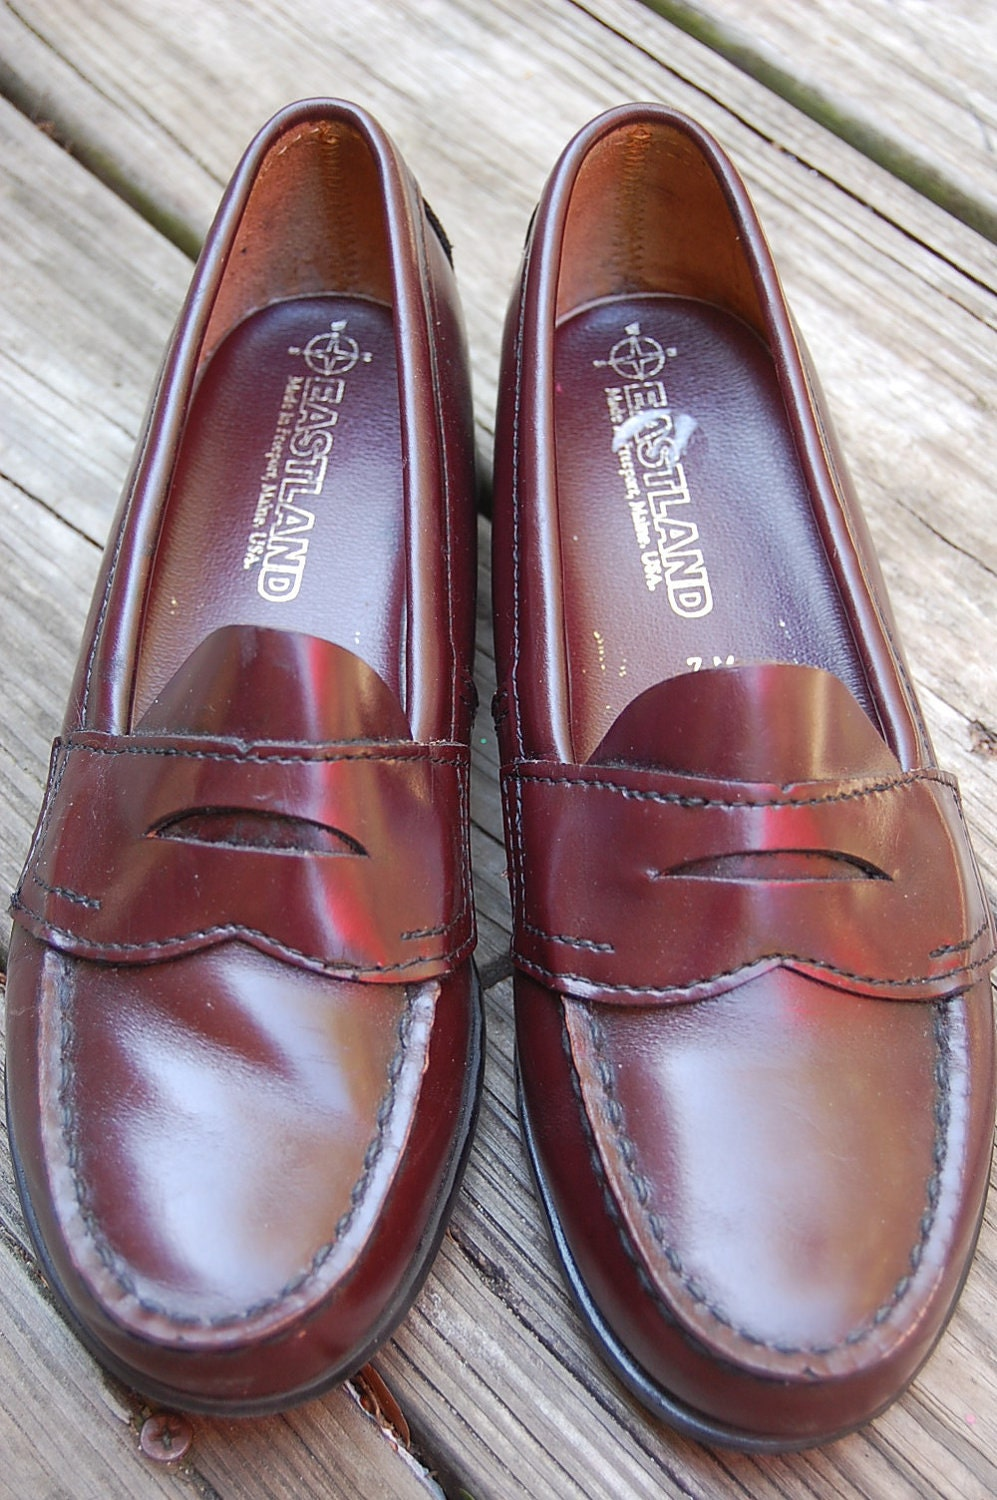 80s Vintage Clothing In The Uk Just Got Easier: Vintage 80s Eastland Classic Preppy Penny Loafers Weejuns